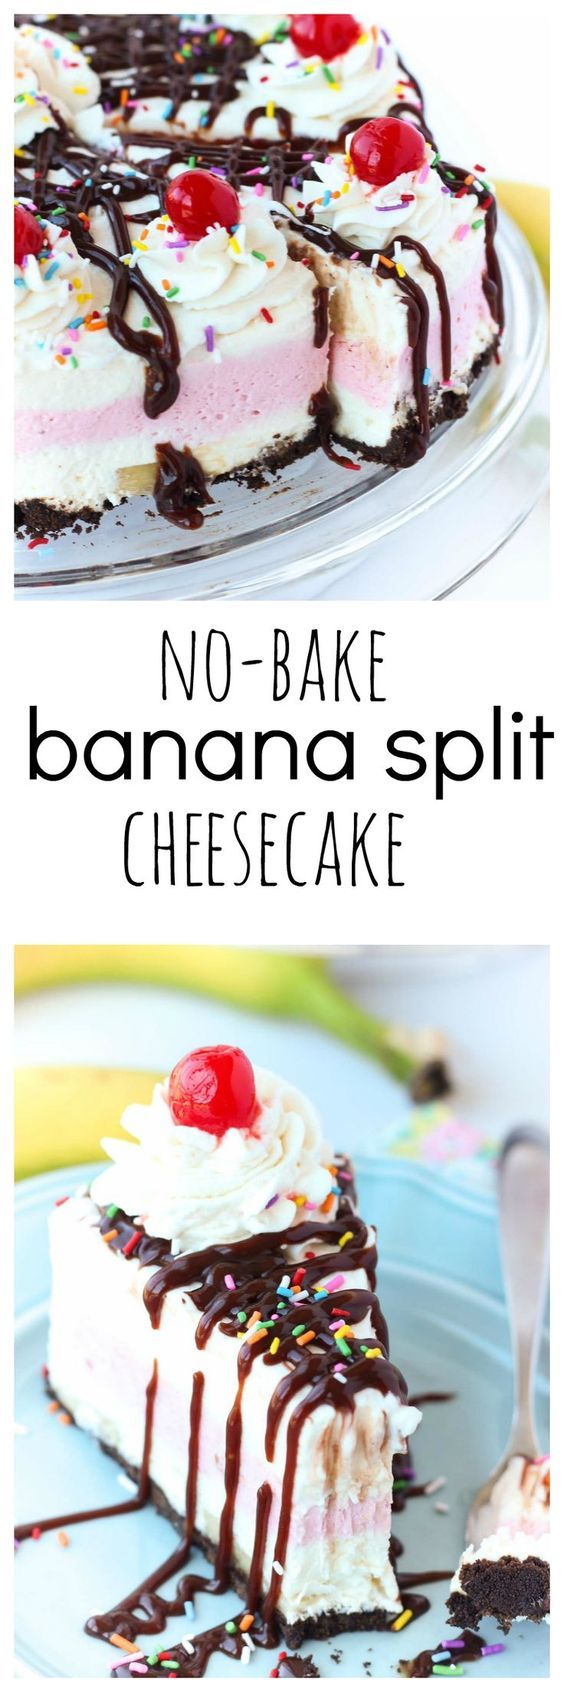 3 fruity cheesecake layers make up this easy No-Bake Banana Split Cheesecake: banana strawberry and pineapple. Finish it off with a drizzle of chocolate whipped cream and cherries for the perfect summer treat! Freezes perfectly to be thawed and served later as well.